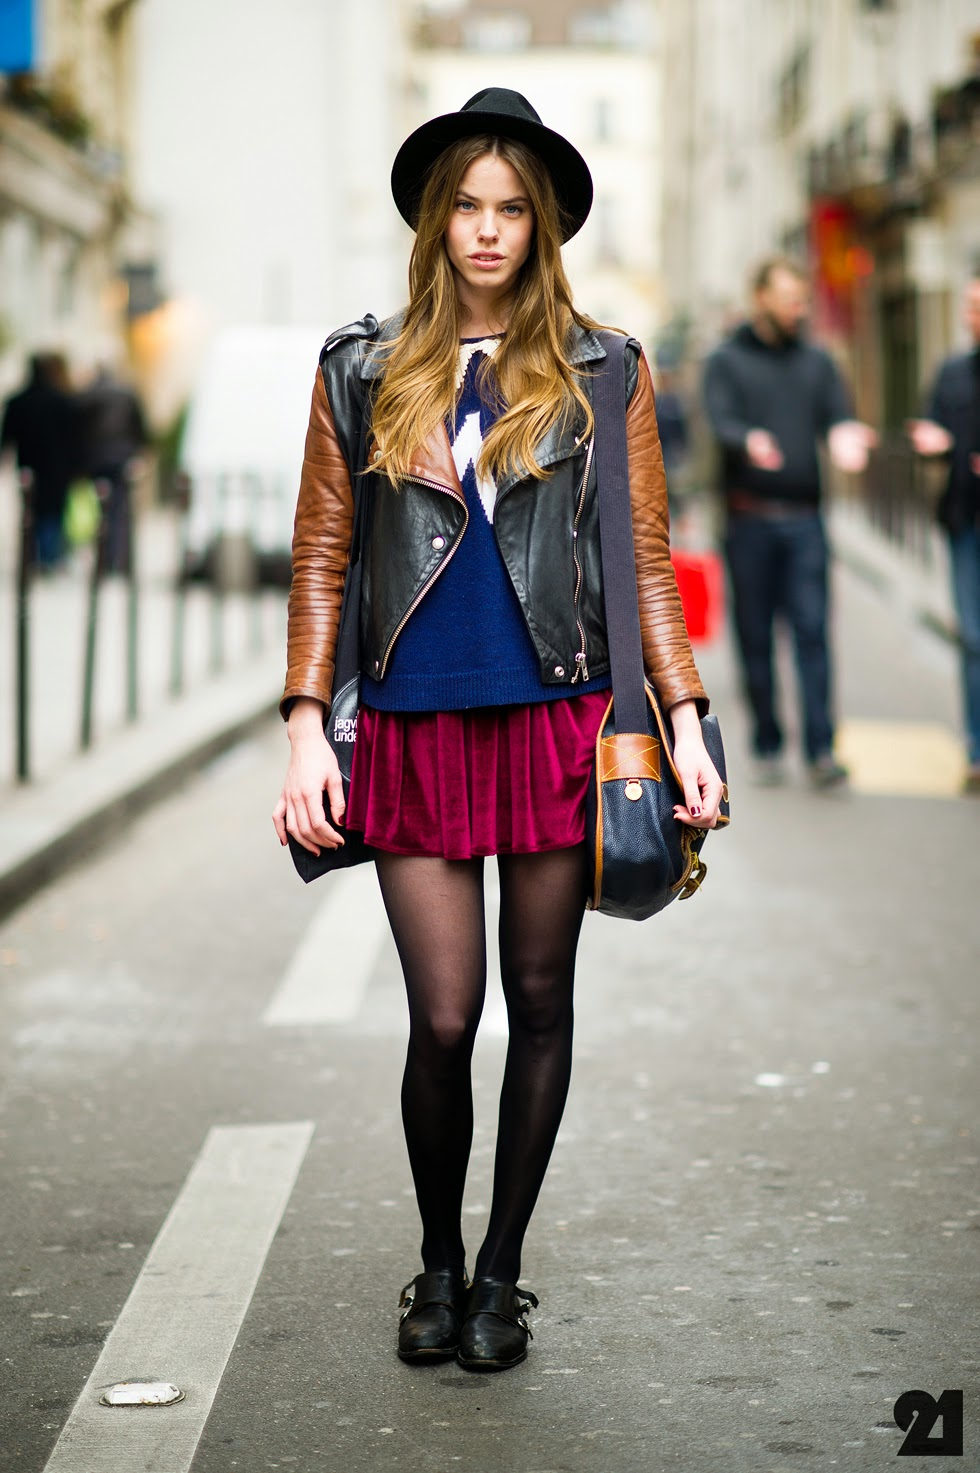 Fashion Beauty Alternative Street Fashion Inspiration